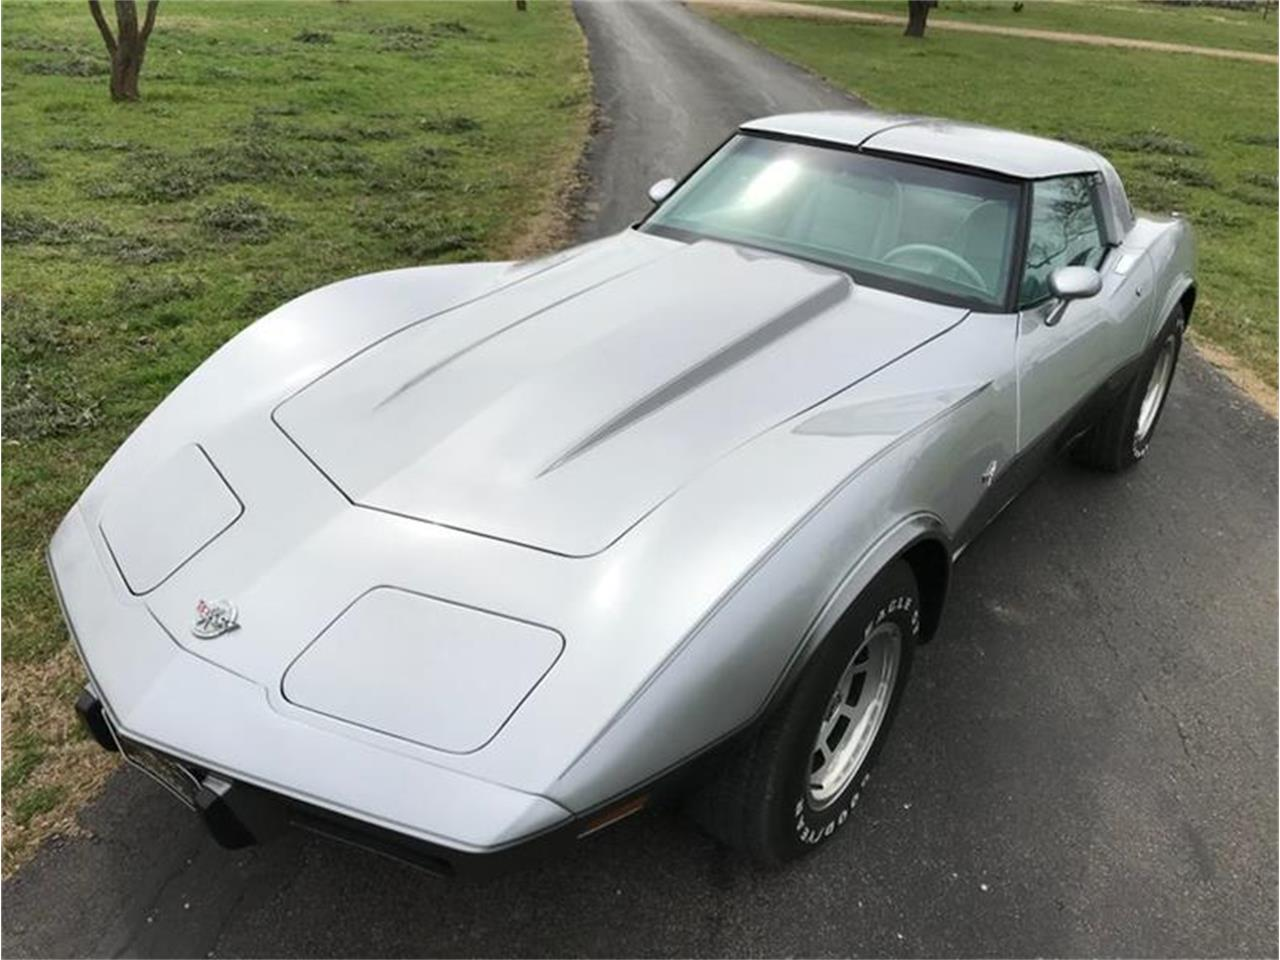 Large Picture of '78 Chevrolet Corvette located in Fredericksburg Texas - $19,950.00 - PNTP